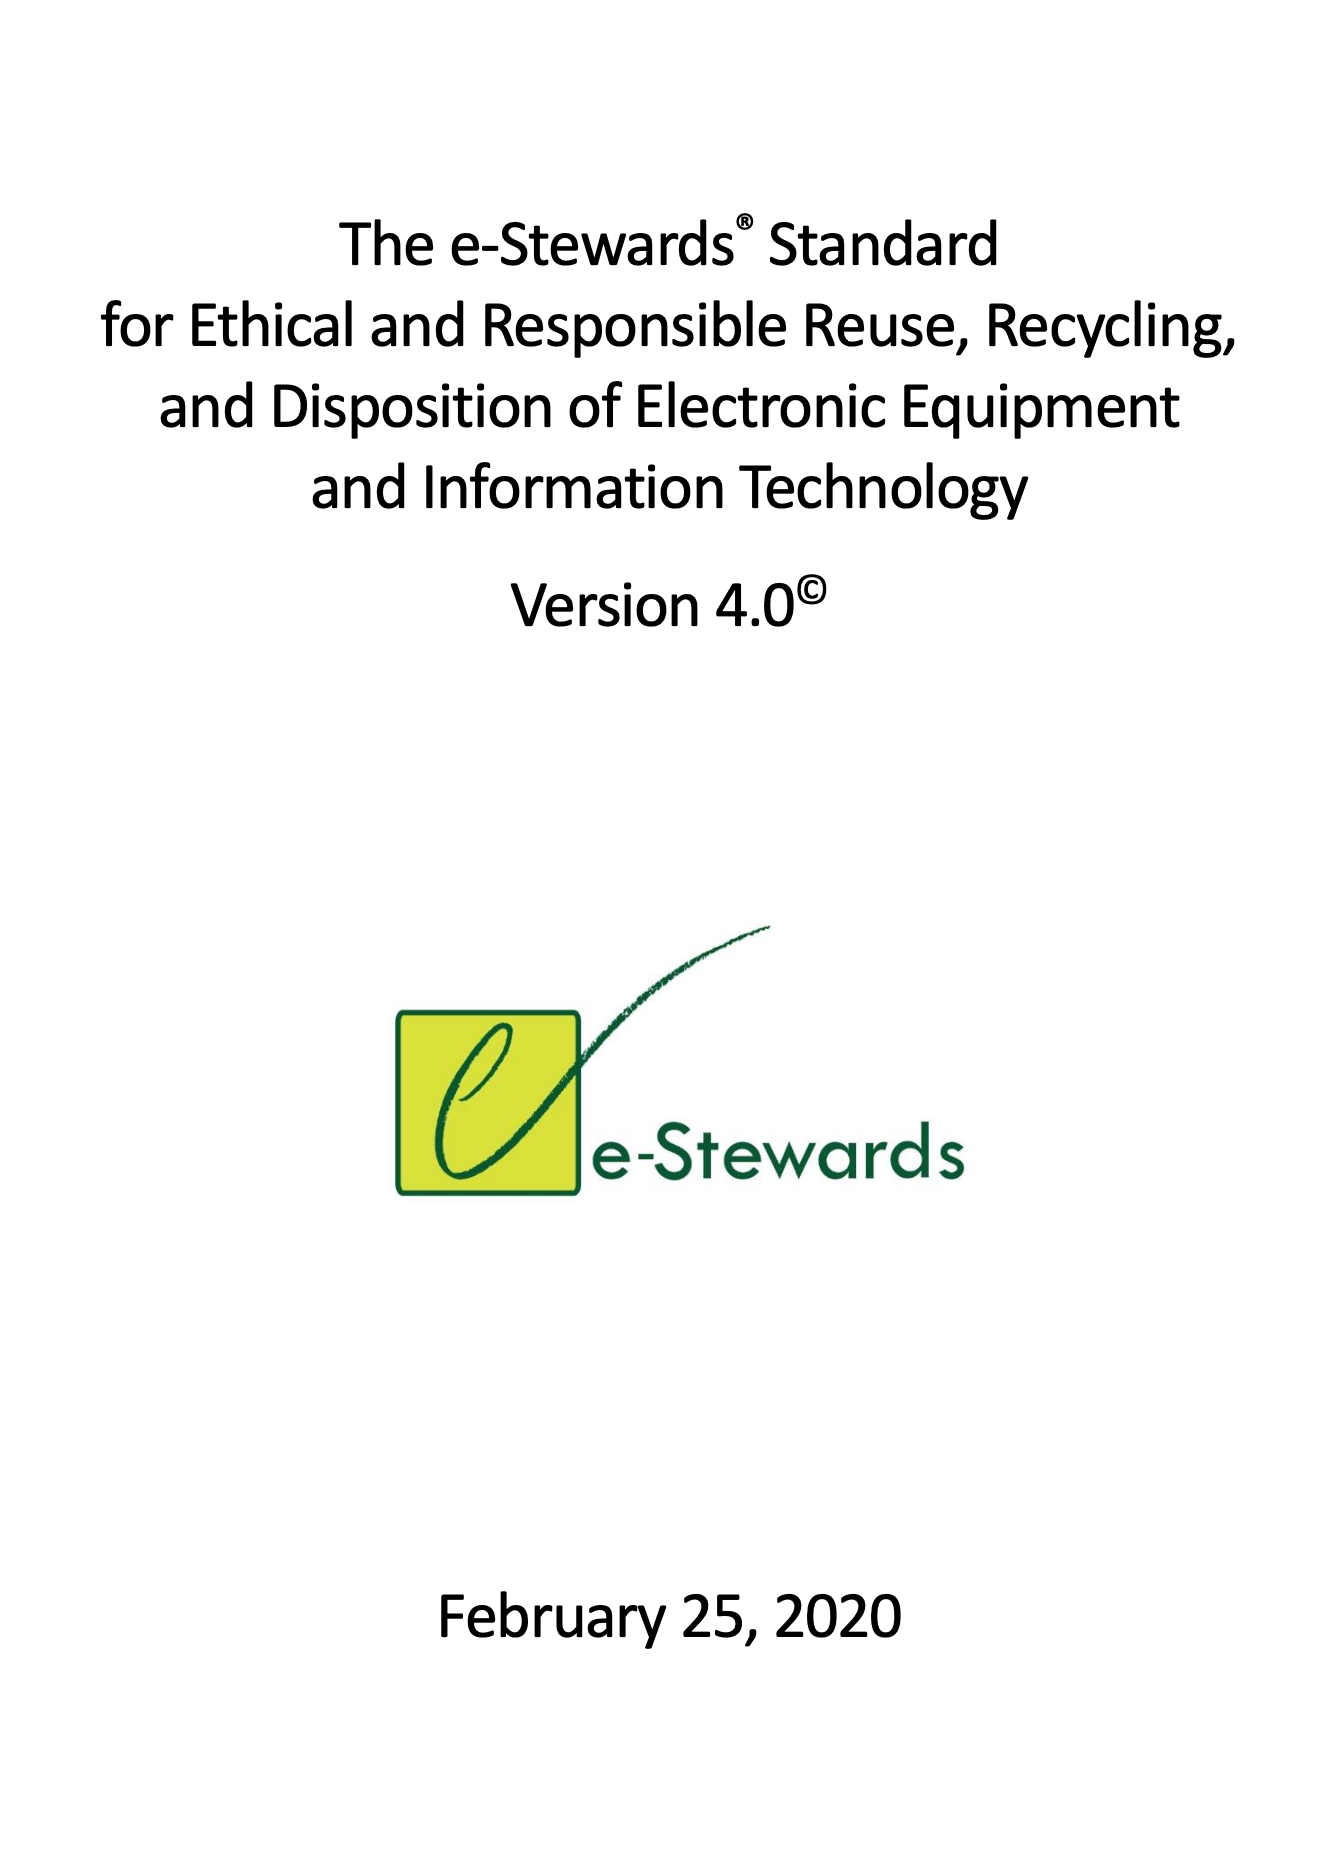 e-Stewards Publishes Latest Version (V4.0) of its Ethical Electronics Reuse and Recycling Standard